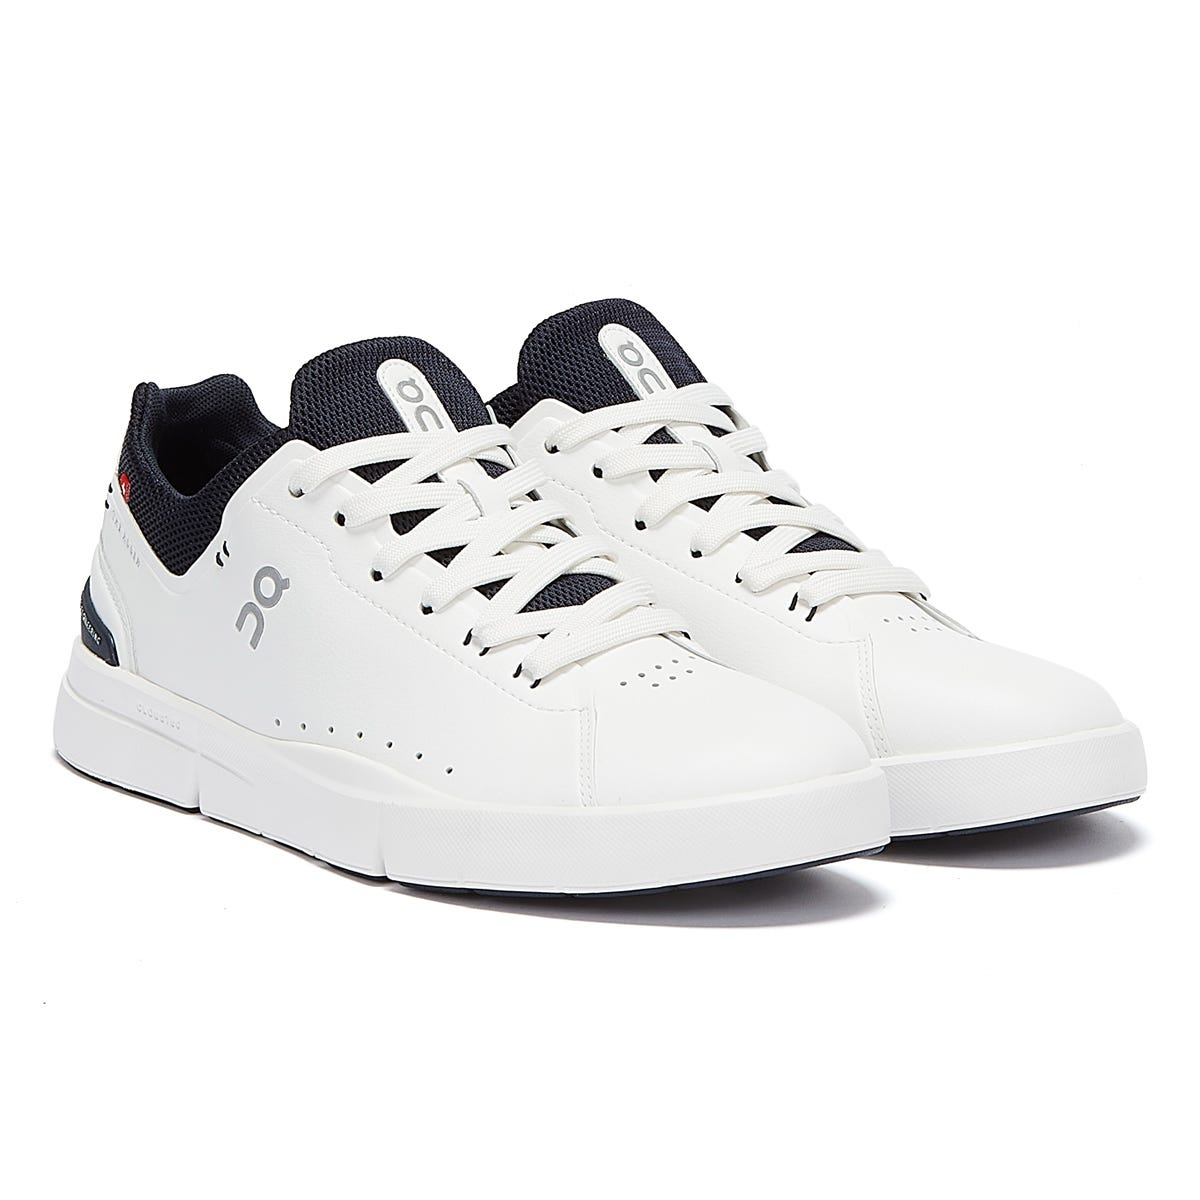 Trainers & Running Shoes On Running The Roger Advantage Mens White / Midnight Trainers